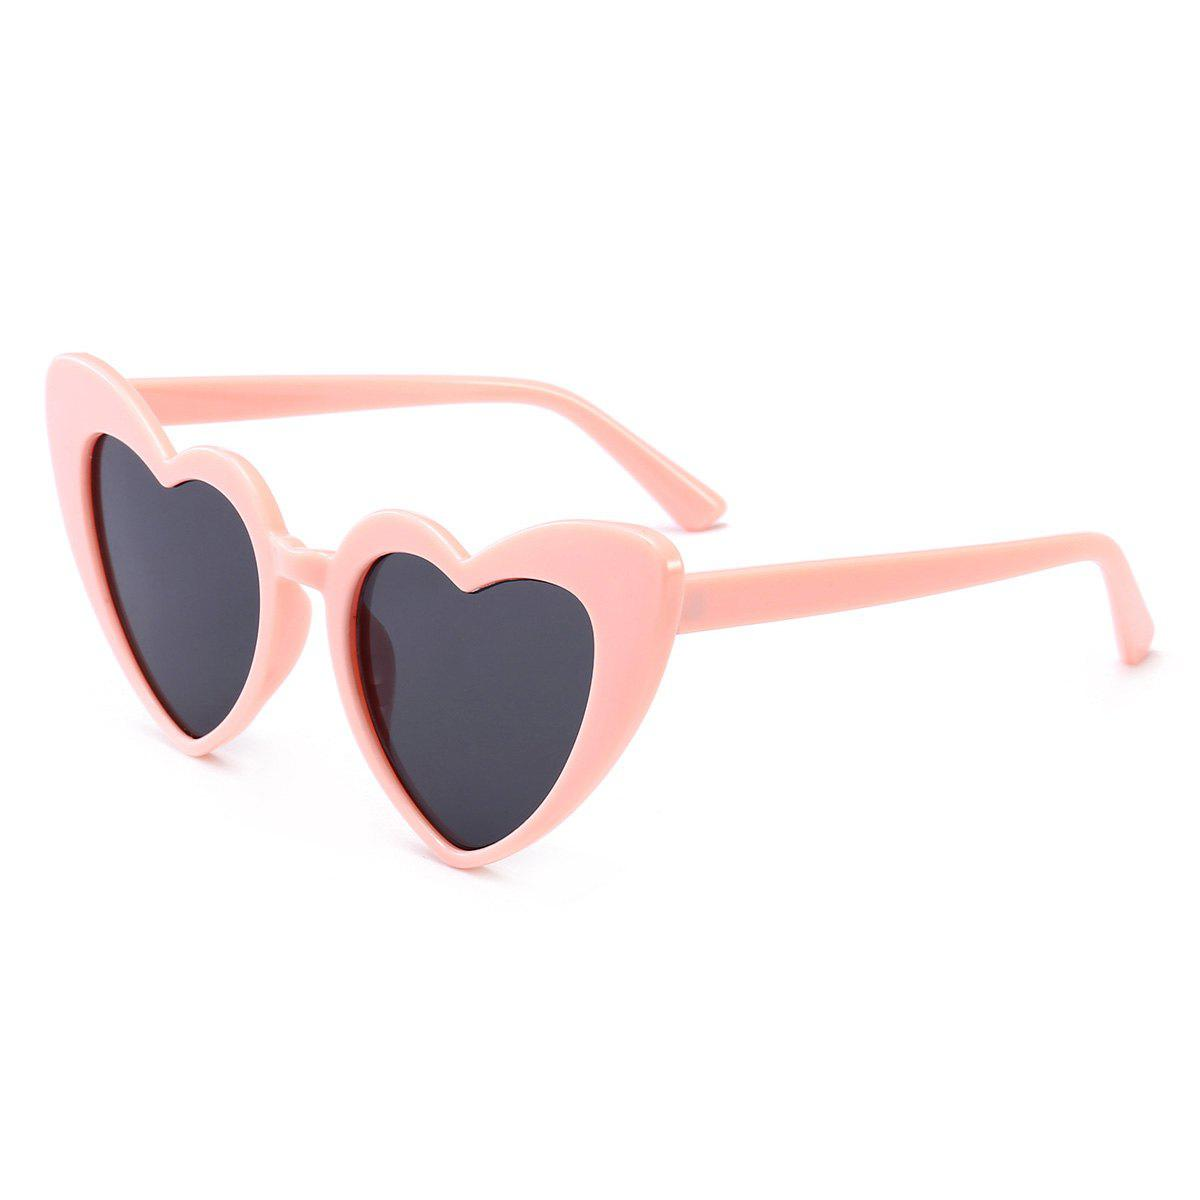 Heart Shape Full Frame Sunglasses - BLACK/PINK